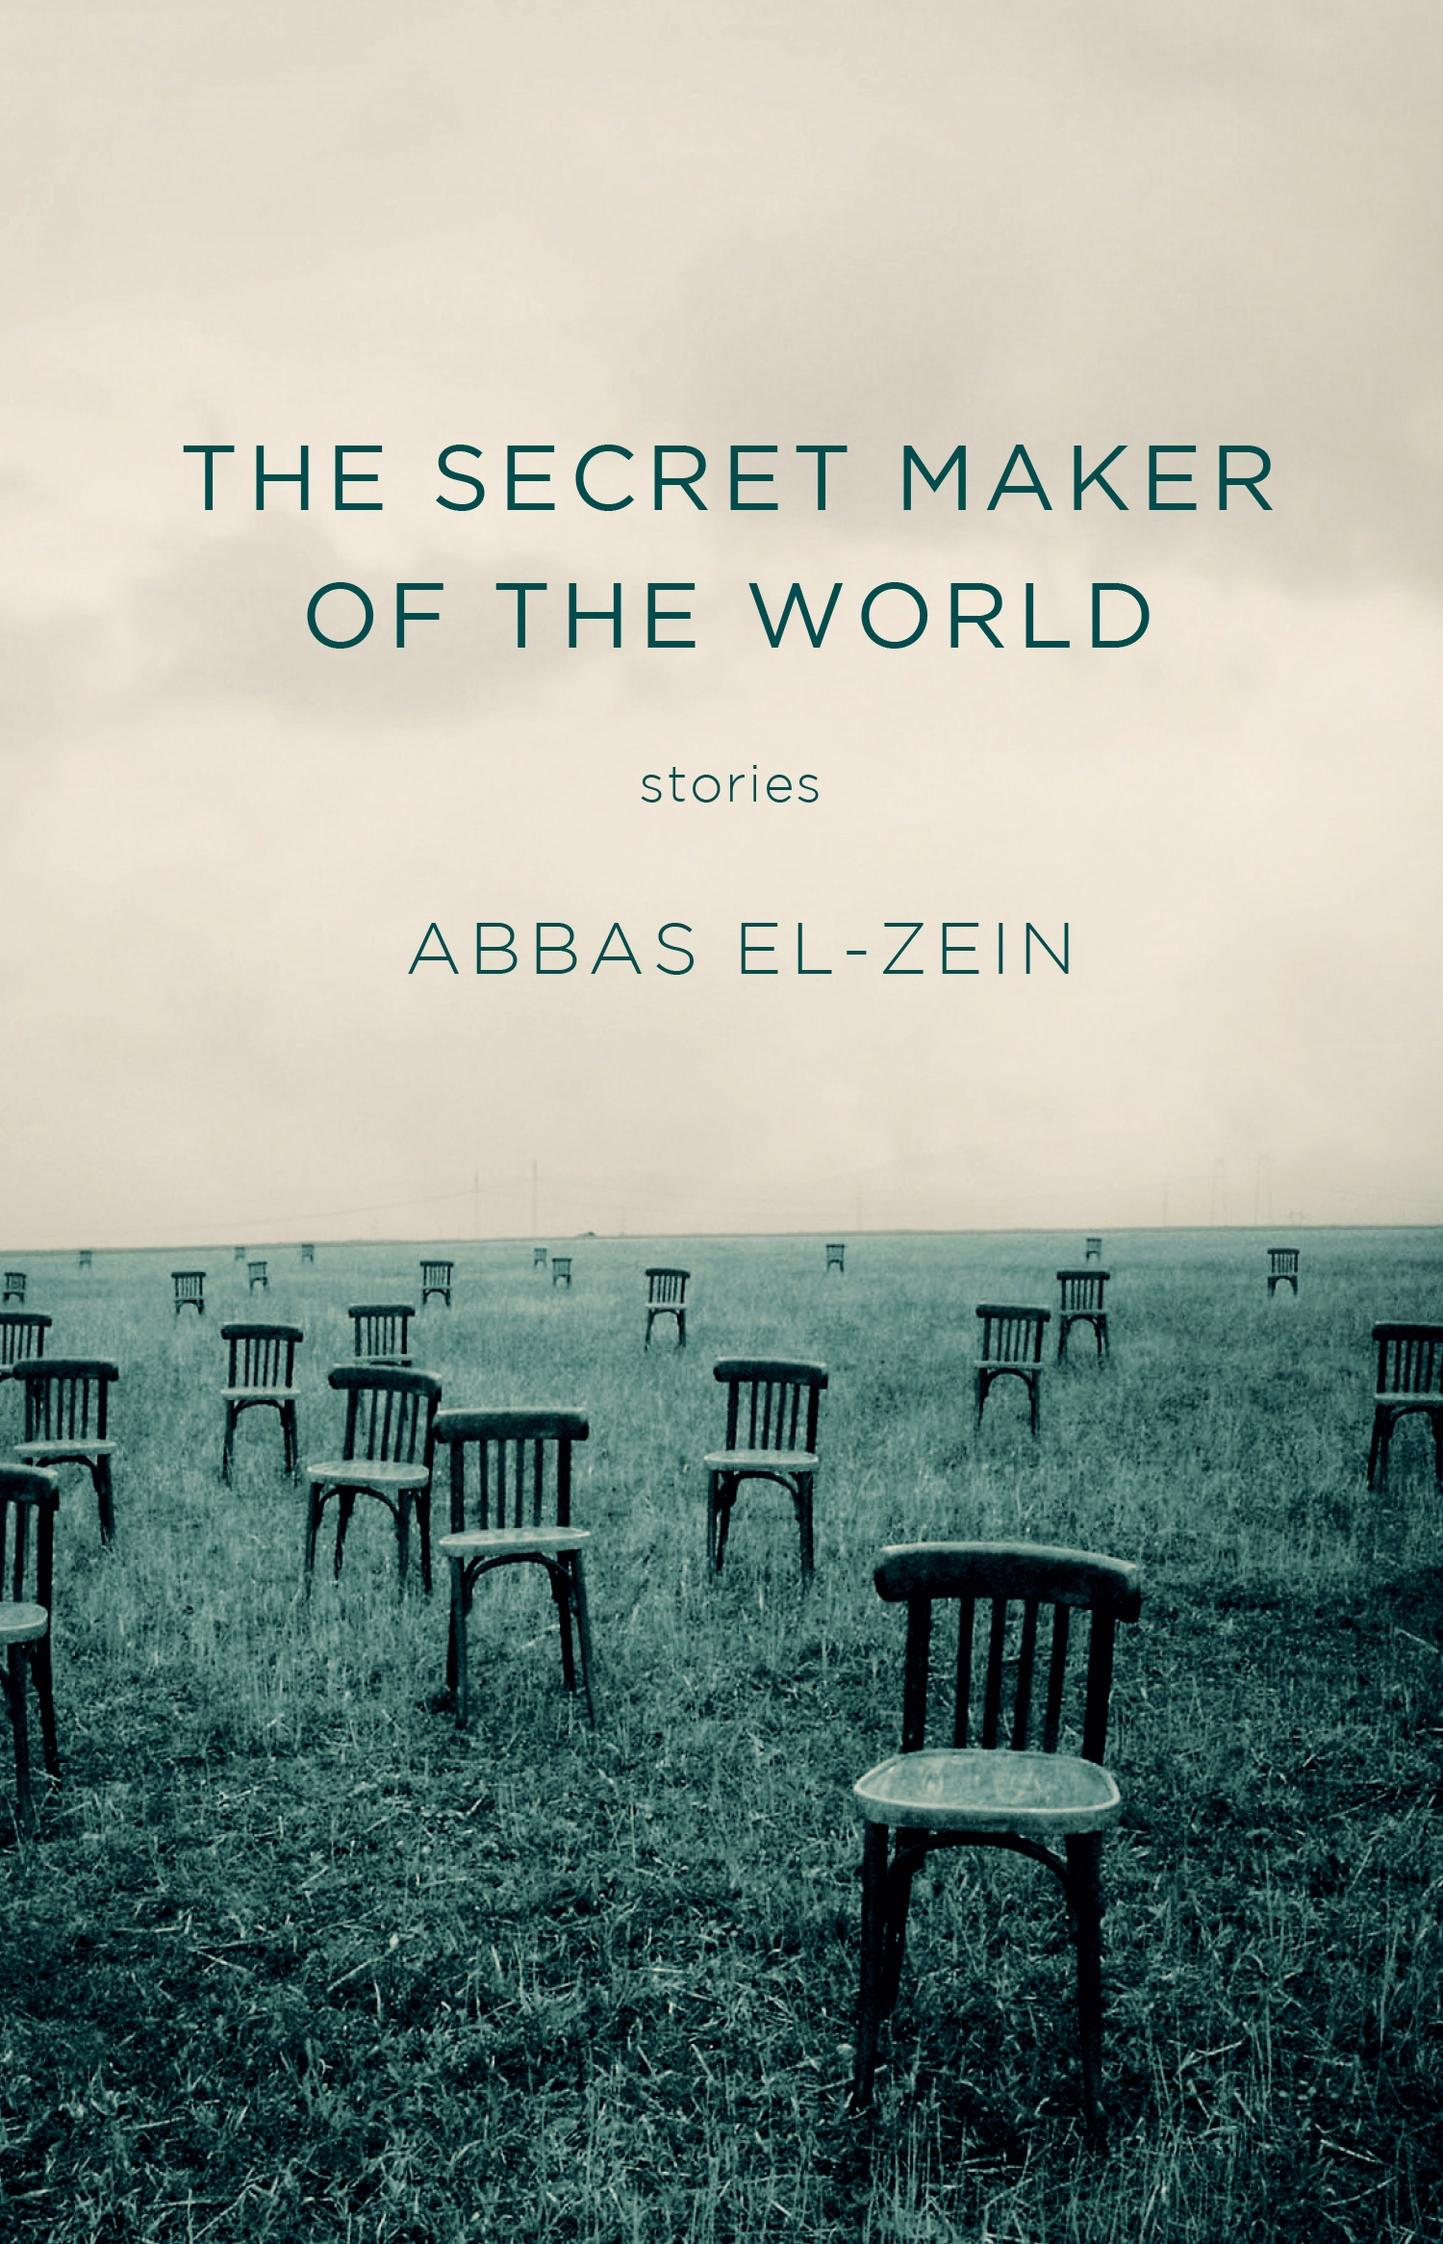 The Secret Maker Of The World: Stories,